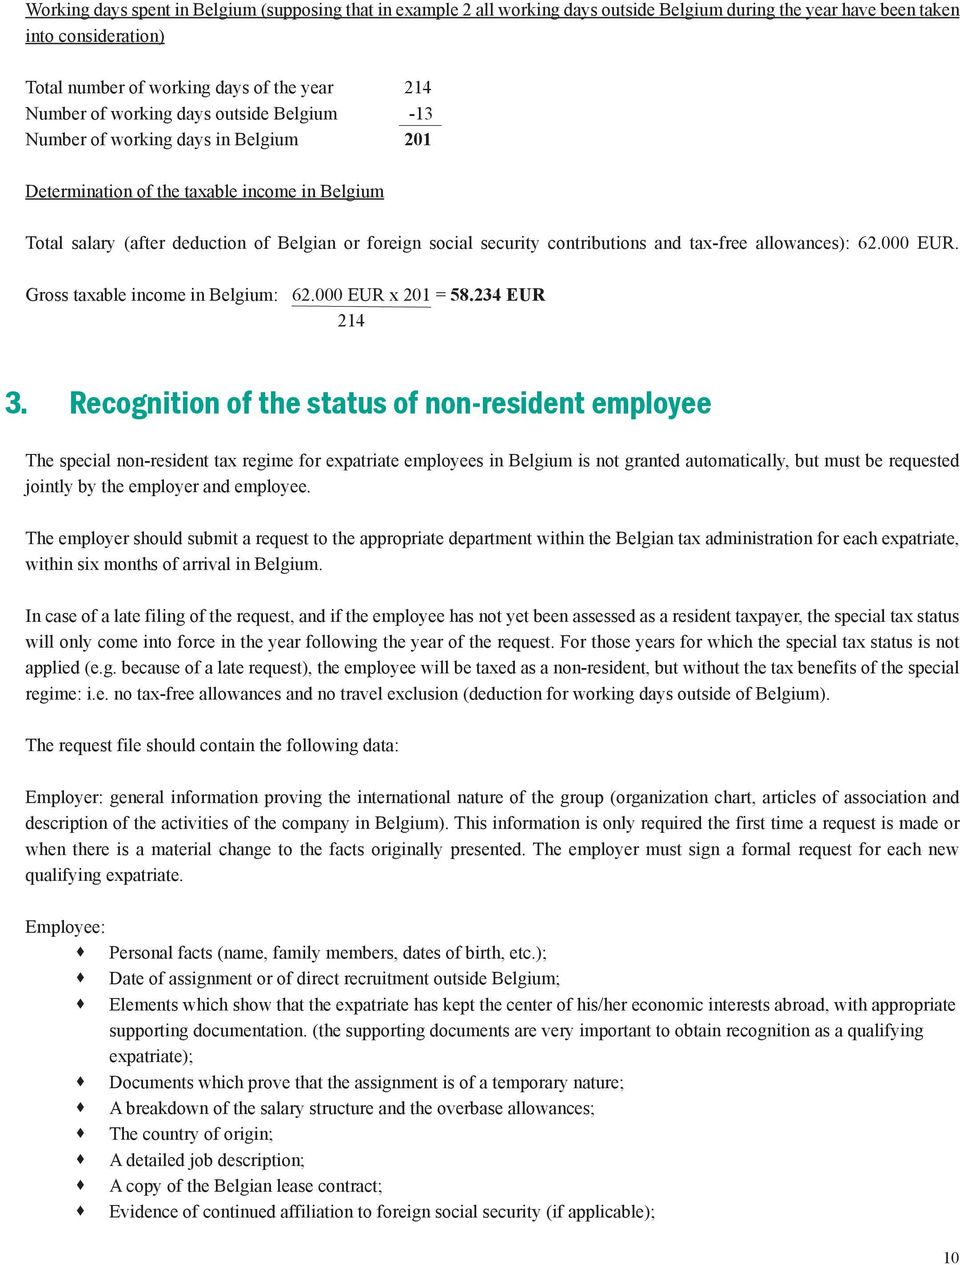 The Special Non-resident Tax Regime for Expatriate Employees in